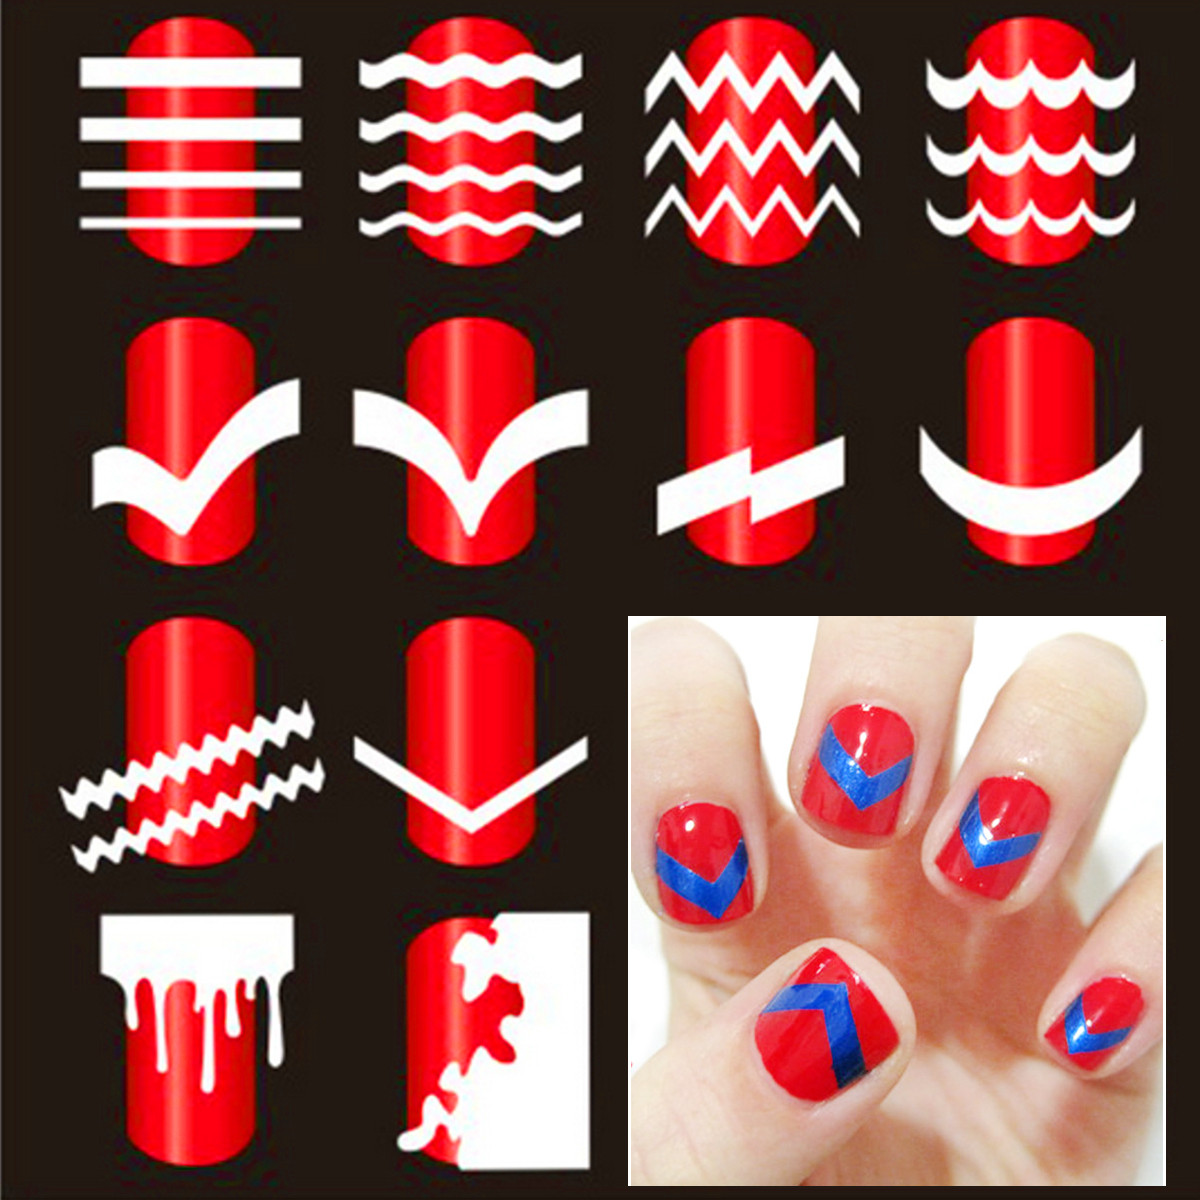 French nail art tip tape guide stencil manicure tool for sticker french nail art tip tape guide stencil manicure tool for sticker decal decoration diy prinsesfo Choice Image